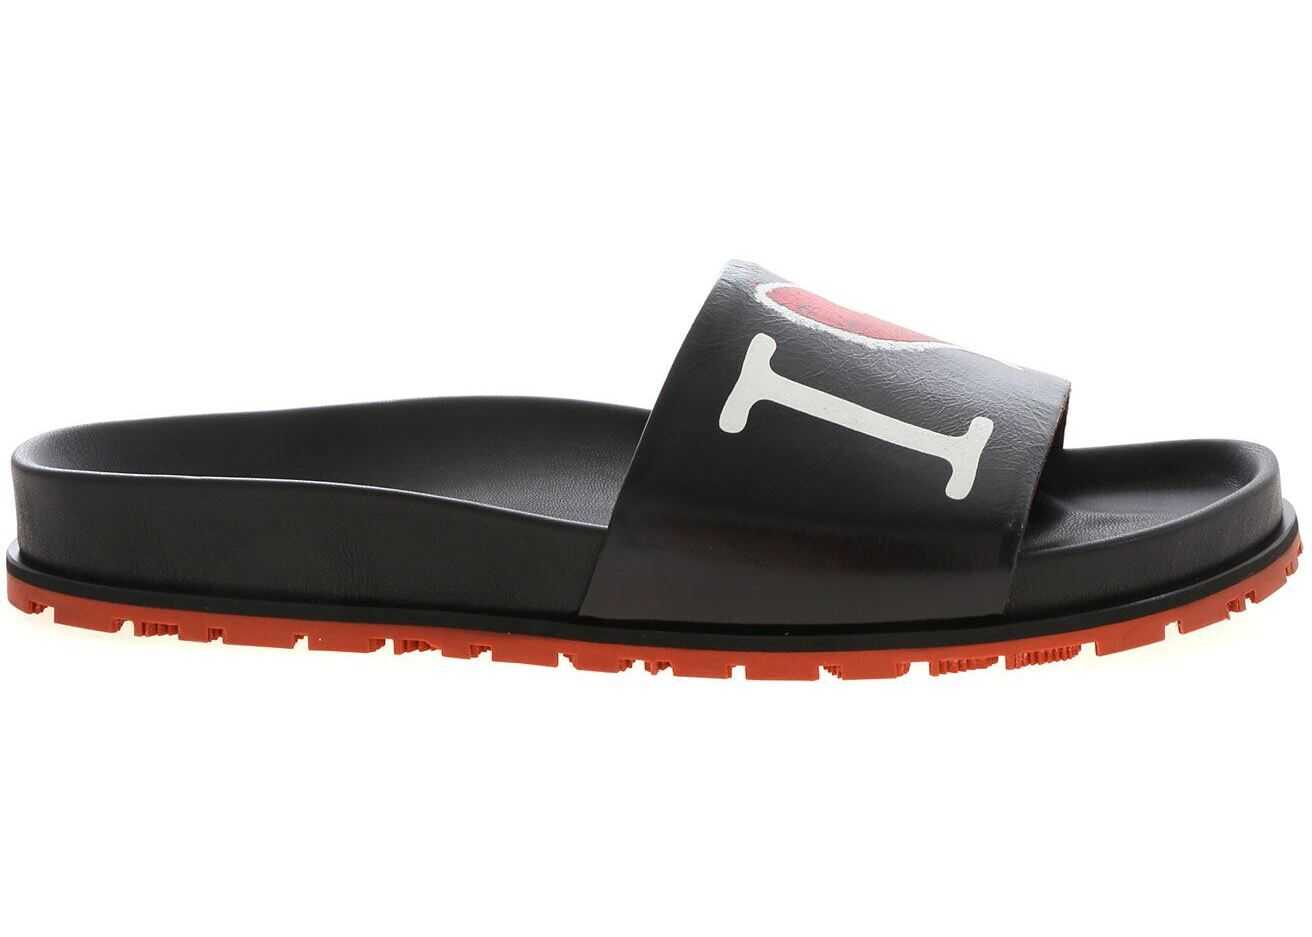 Vivienne Westwood I Love Print Slides In Black Black